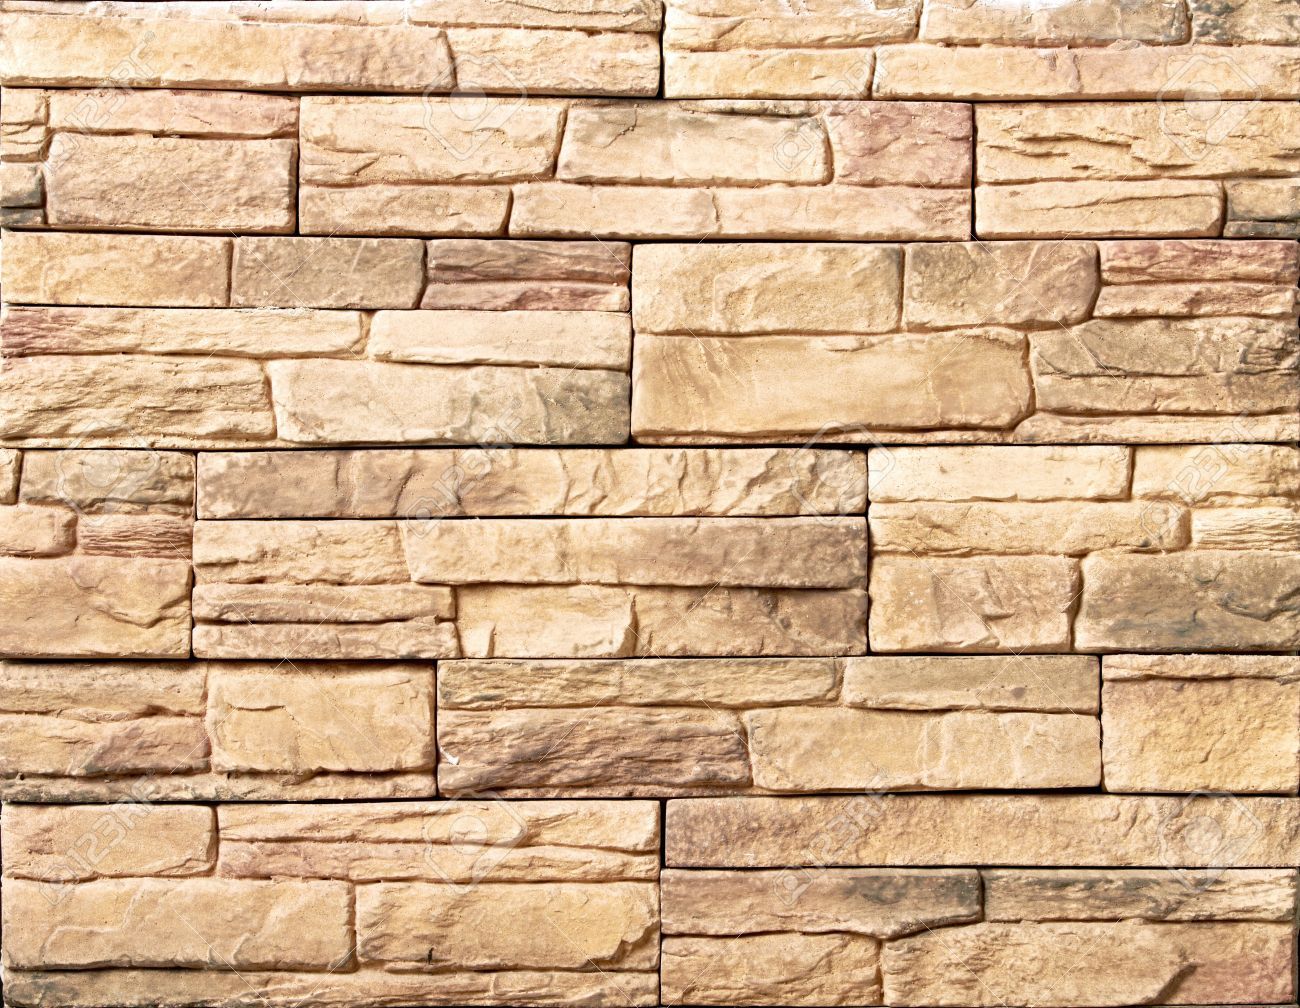 Brick Wall Design As Mortar Background Texture Stock Photo, Picture ...